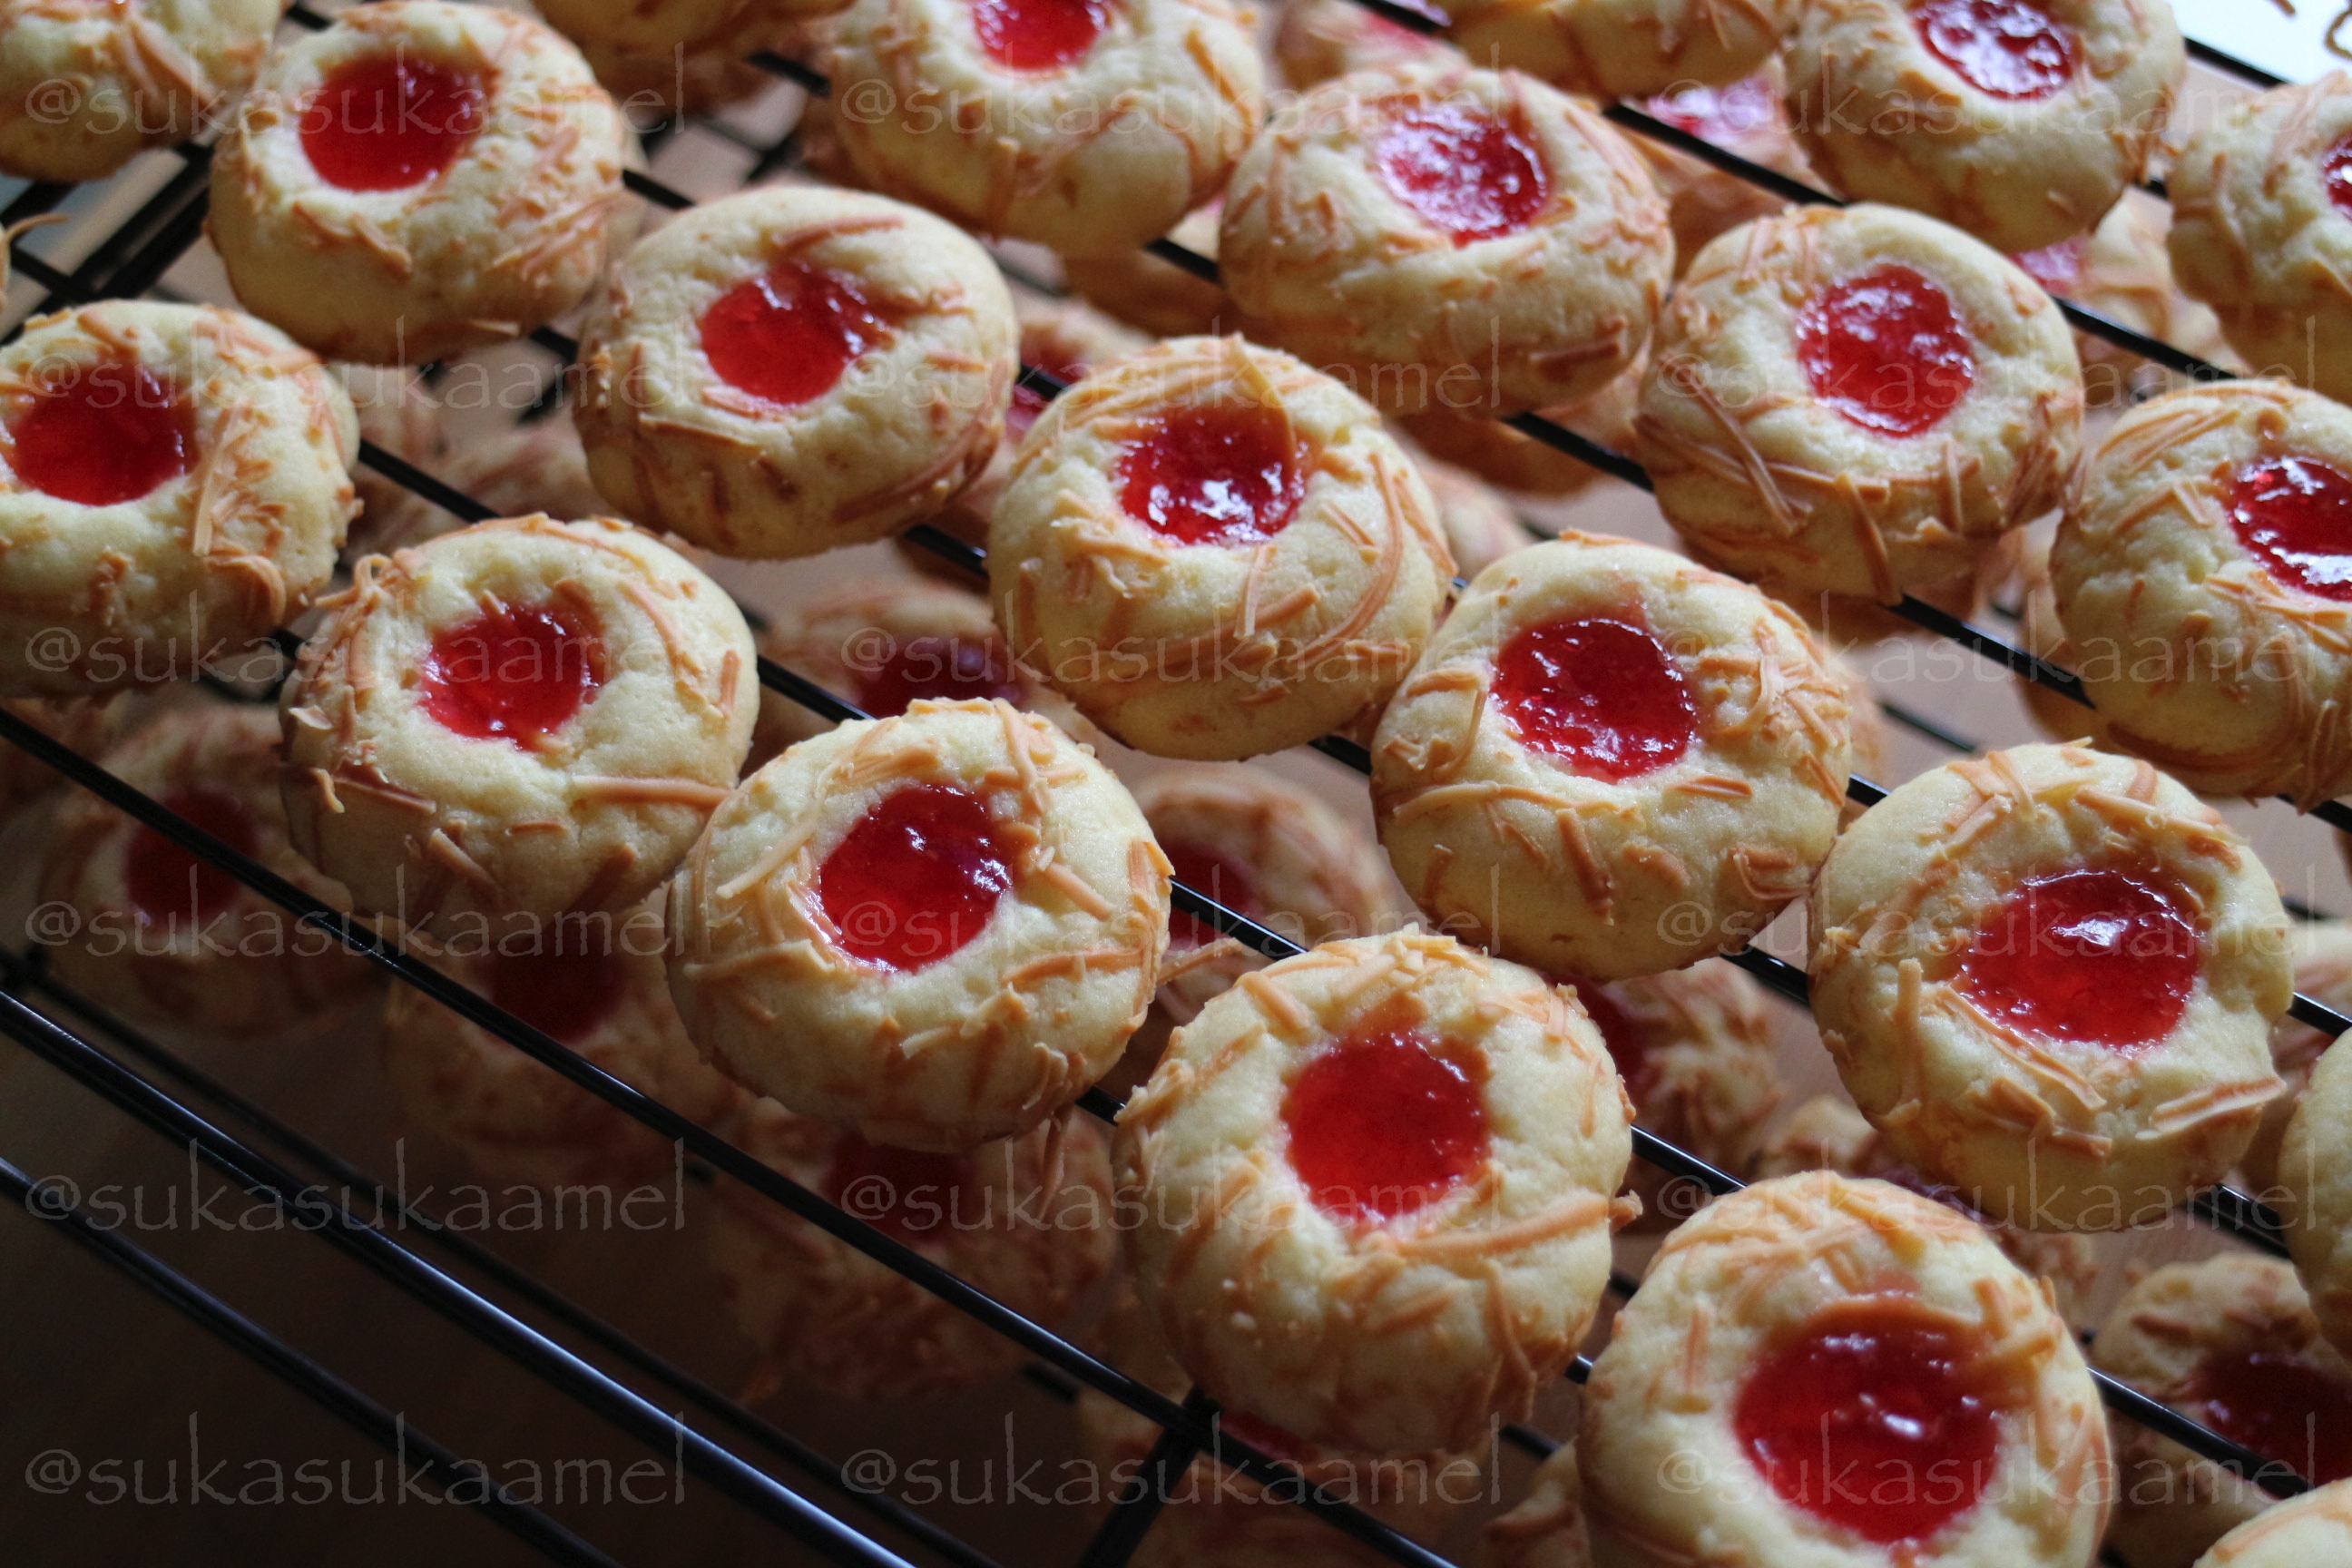 resep strawberry cookies